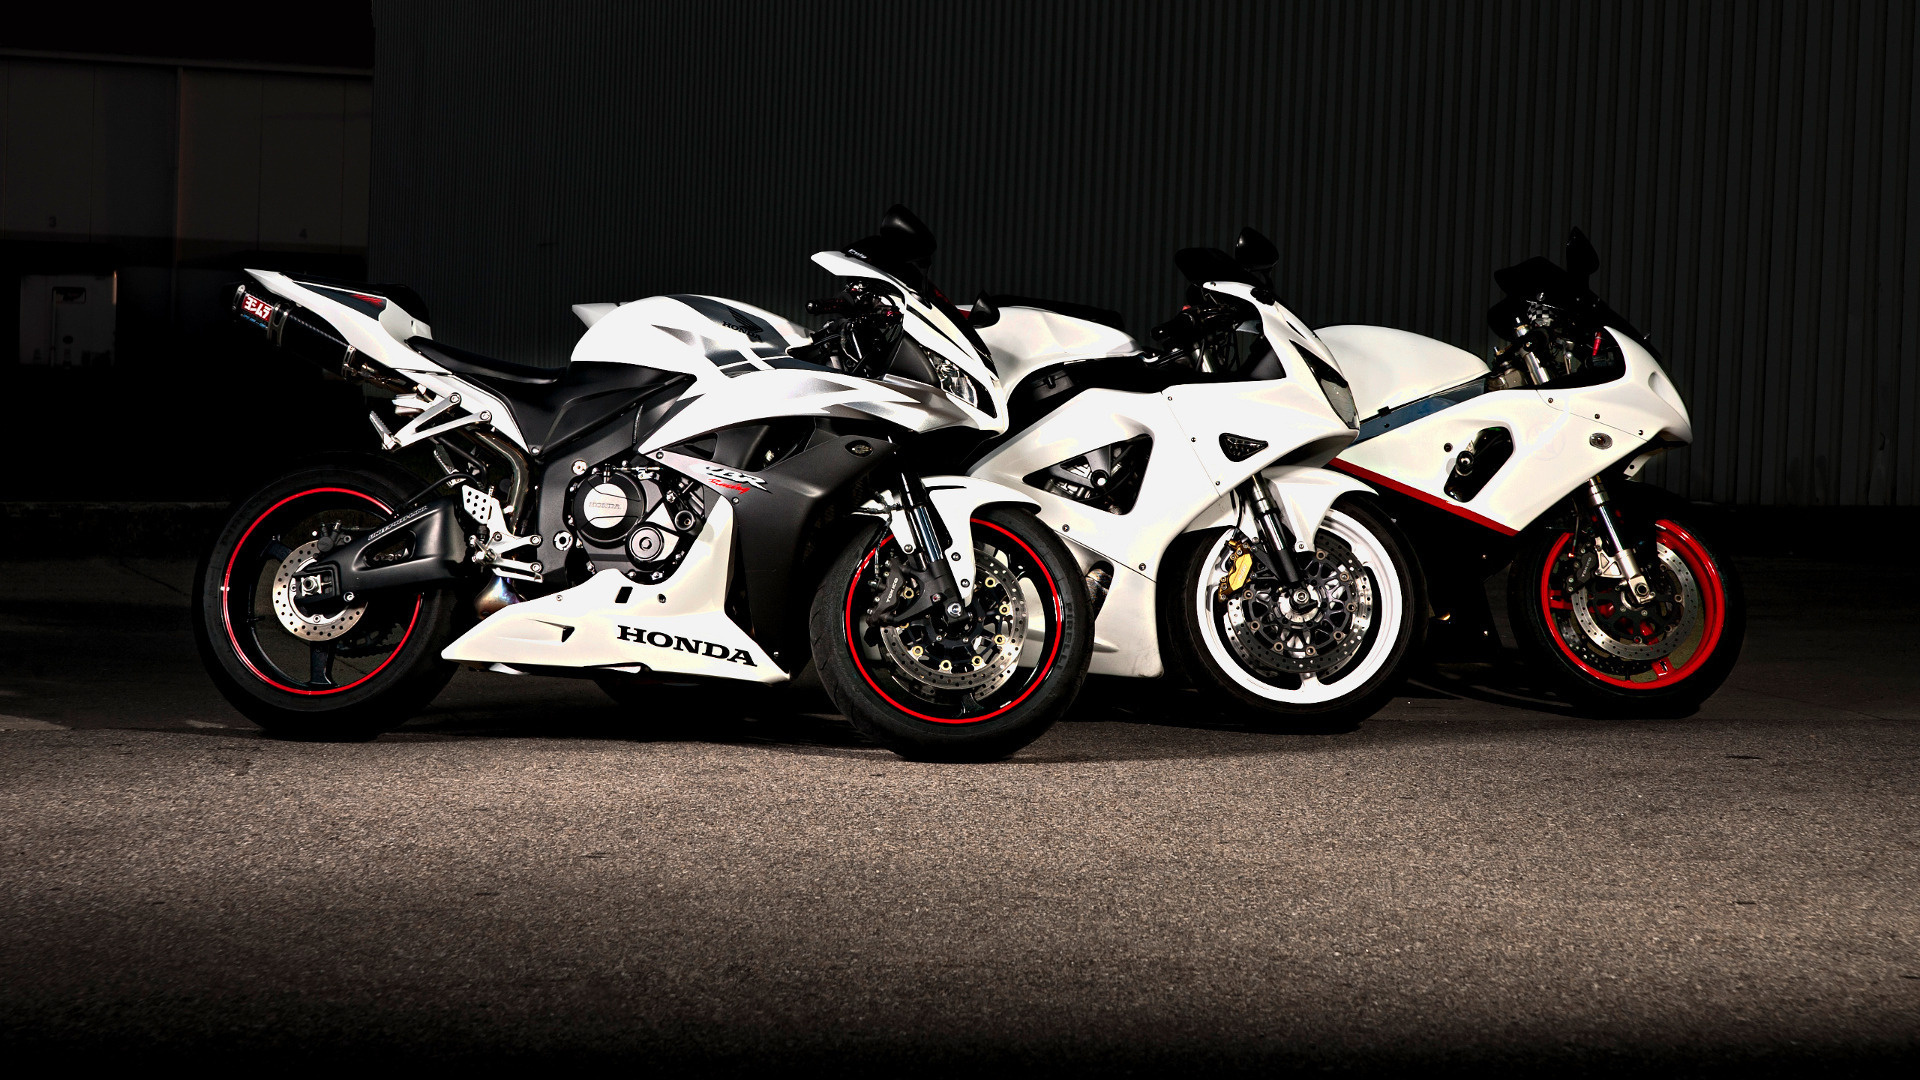 Honda Bike Wallpapers 38